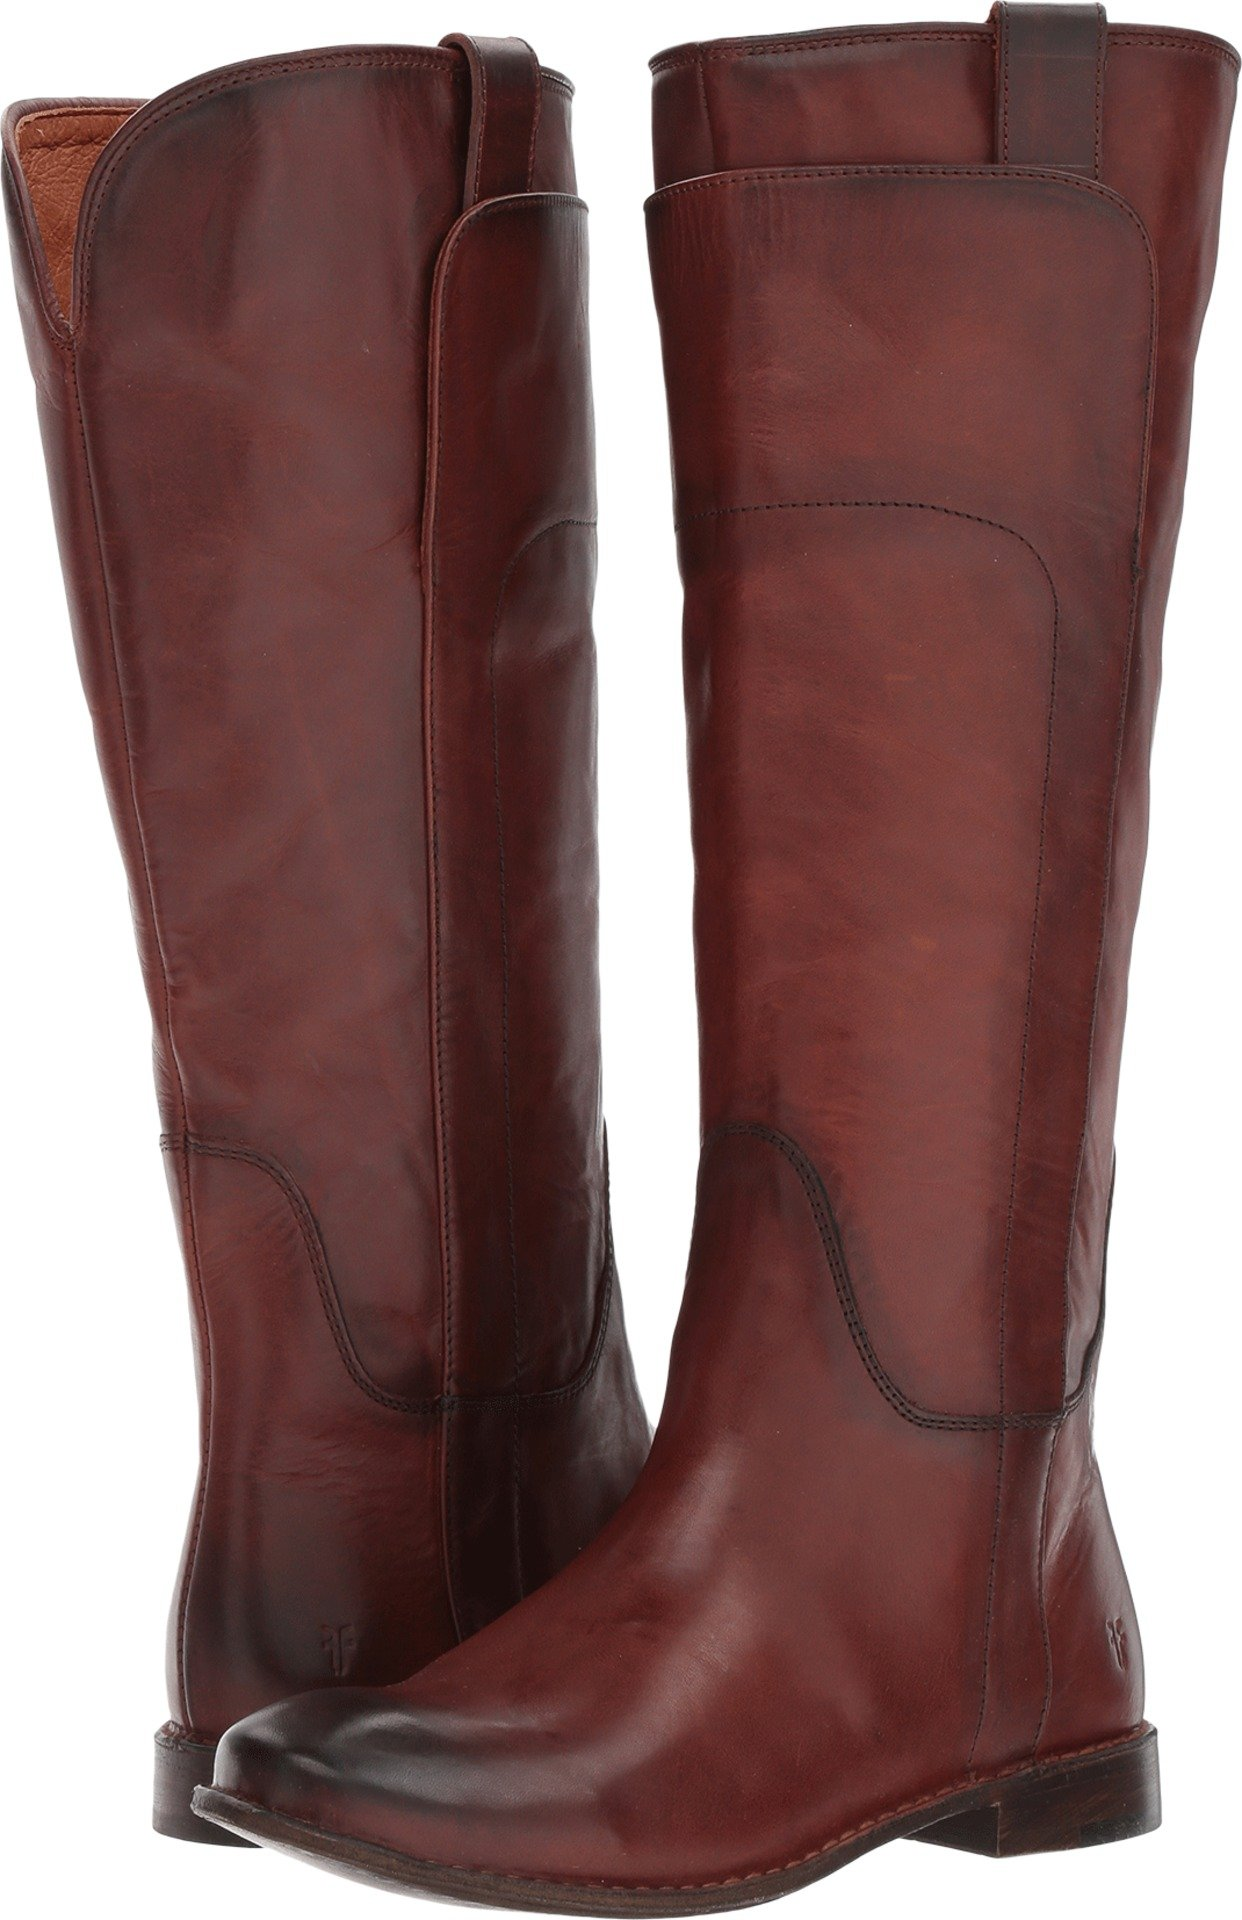 Frye Women's Paige Tall Riding Redwood Smooth Vintage Leather 9.5 B US